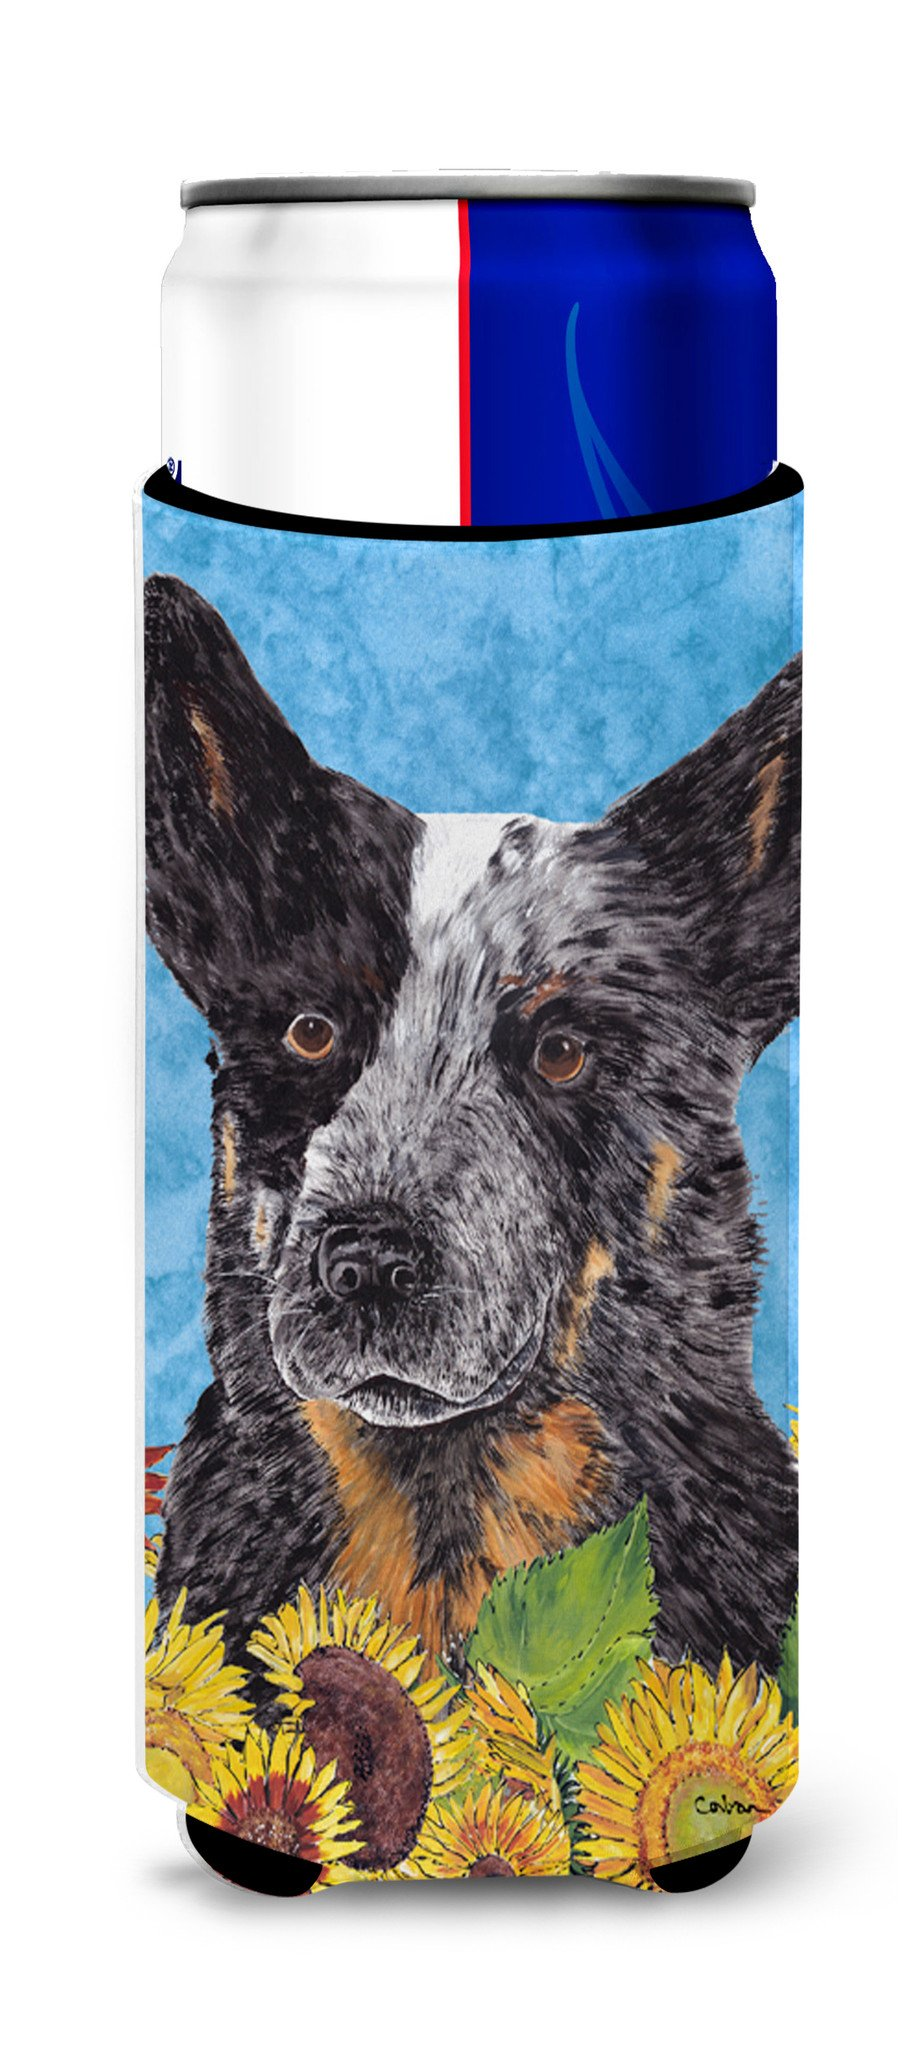 Australian Cattle Dog Ultra Beverage Insulators for slim cans SC9055MUK by Caroline's Treasures